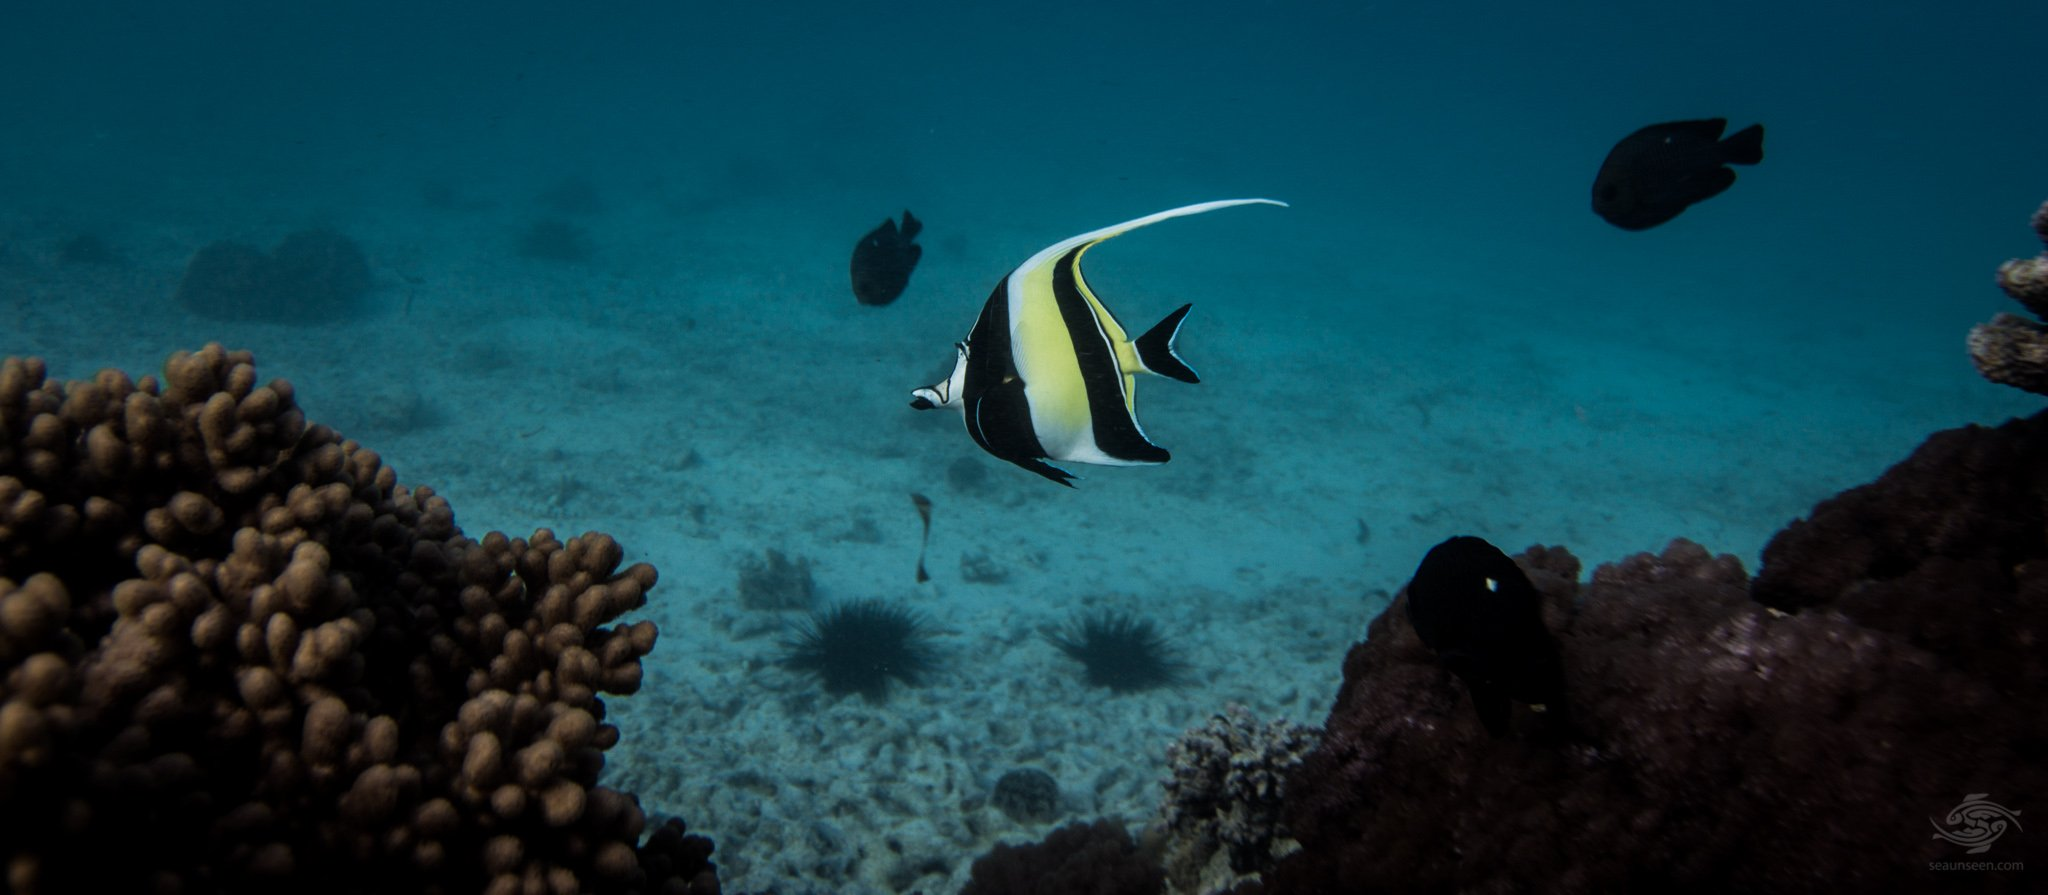 The moorish idol (Zanclus cornutus) is both stunning in its shape and in its coloration and also in the manner in which they swim, often twisting sideways with its long dorsal fin trailing behind it. Its highly unusual disk-like shape along with the stunning combination of yellow, black and white sections make it unusual and unmistakable as one of the most beautiful fish on earth.